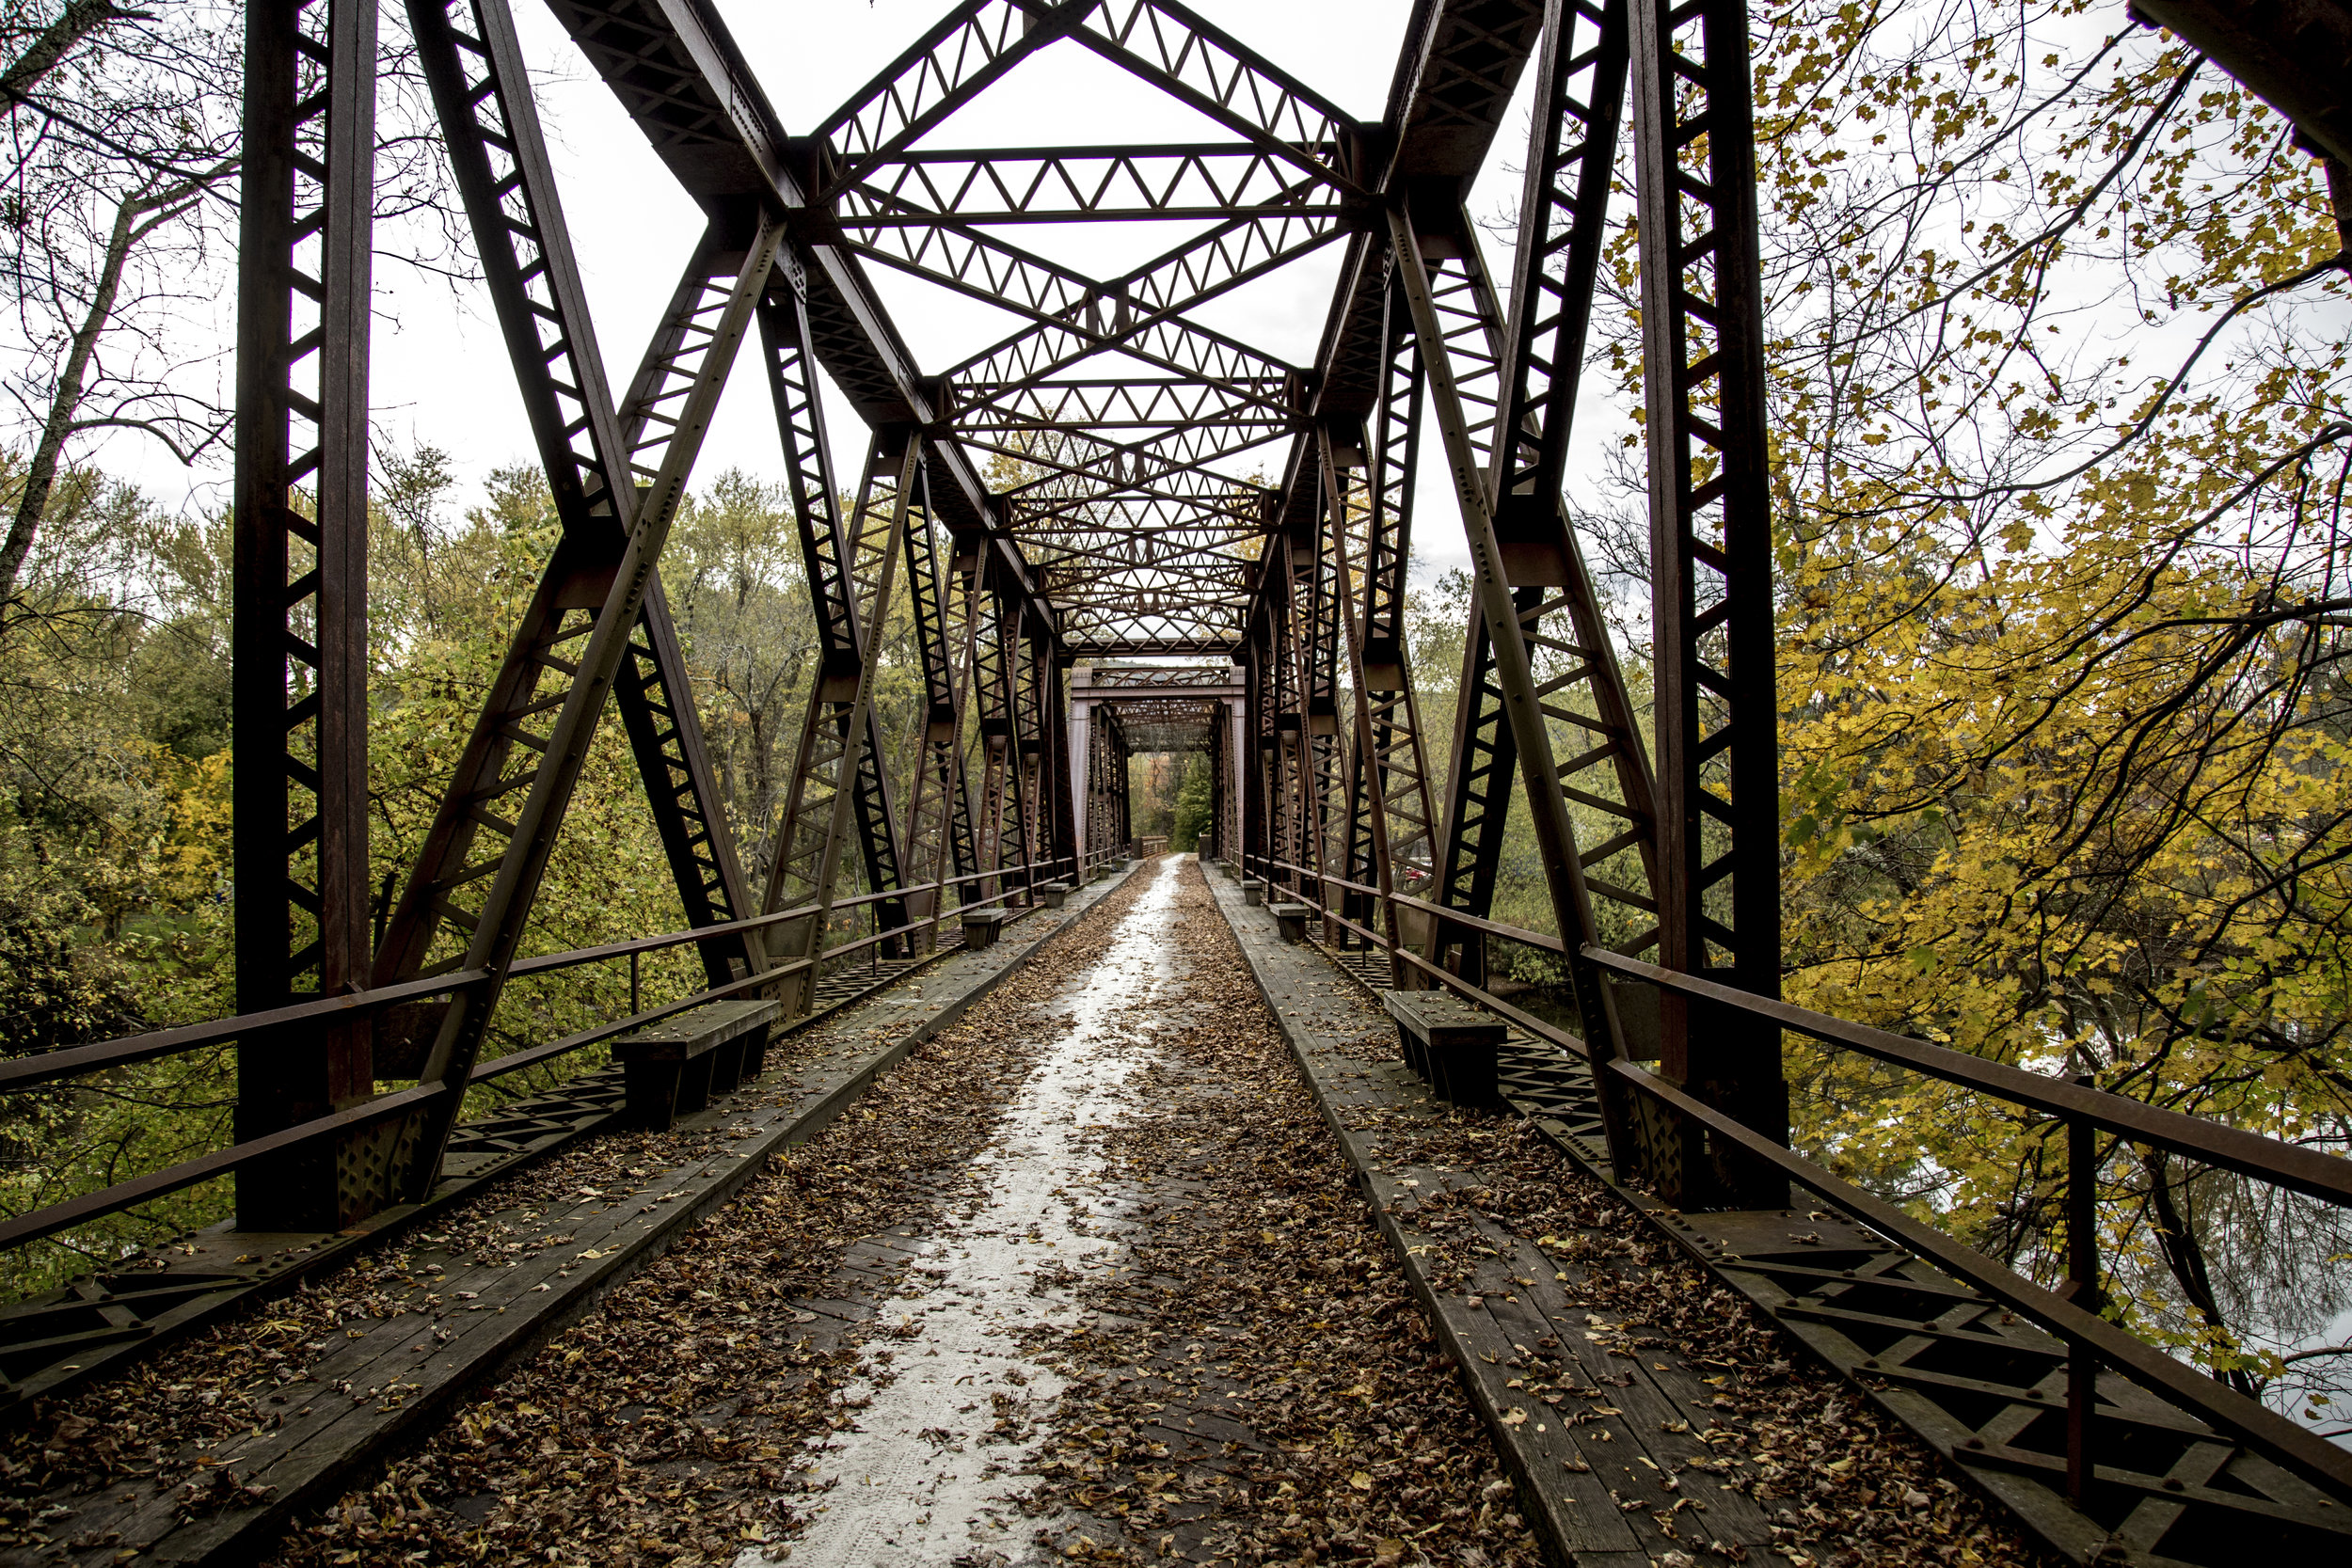 The focus on the path of a bridge may push us to forget the abyss that once mended the gaps.